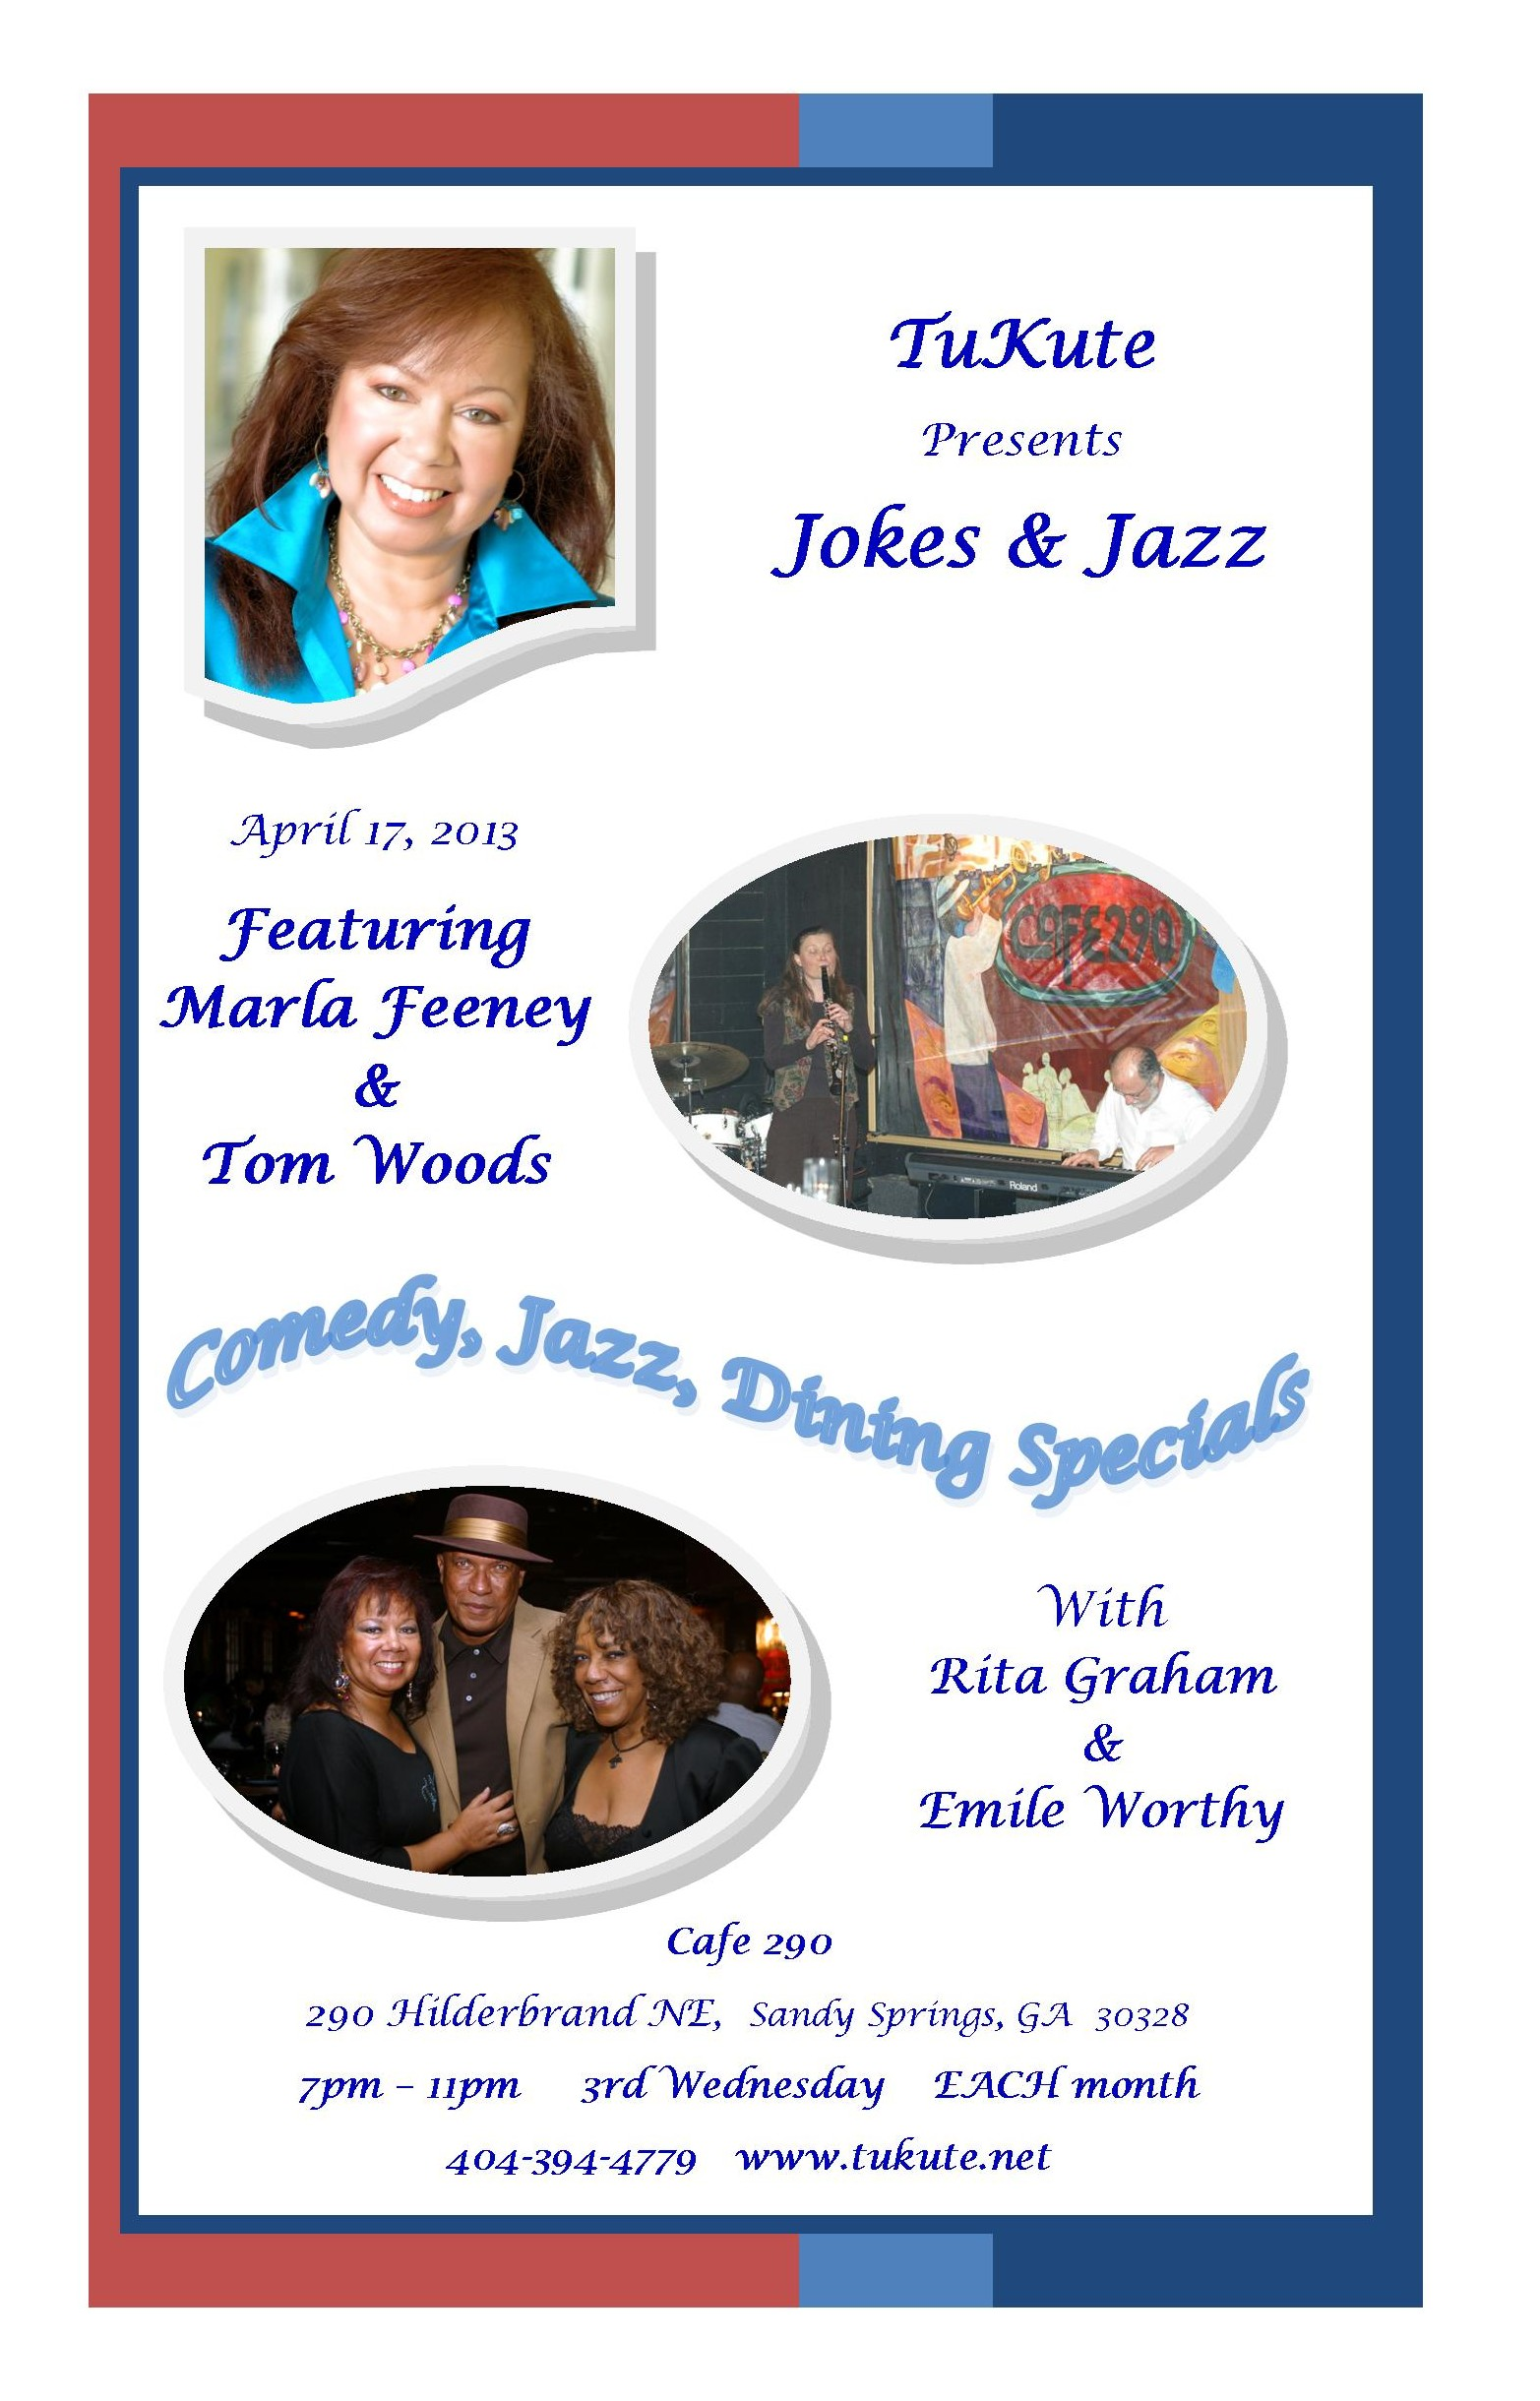 Jokes & Jazz in April